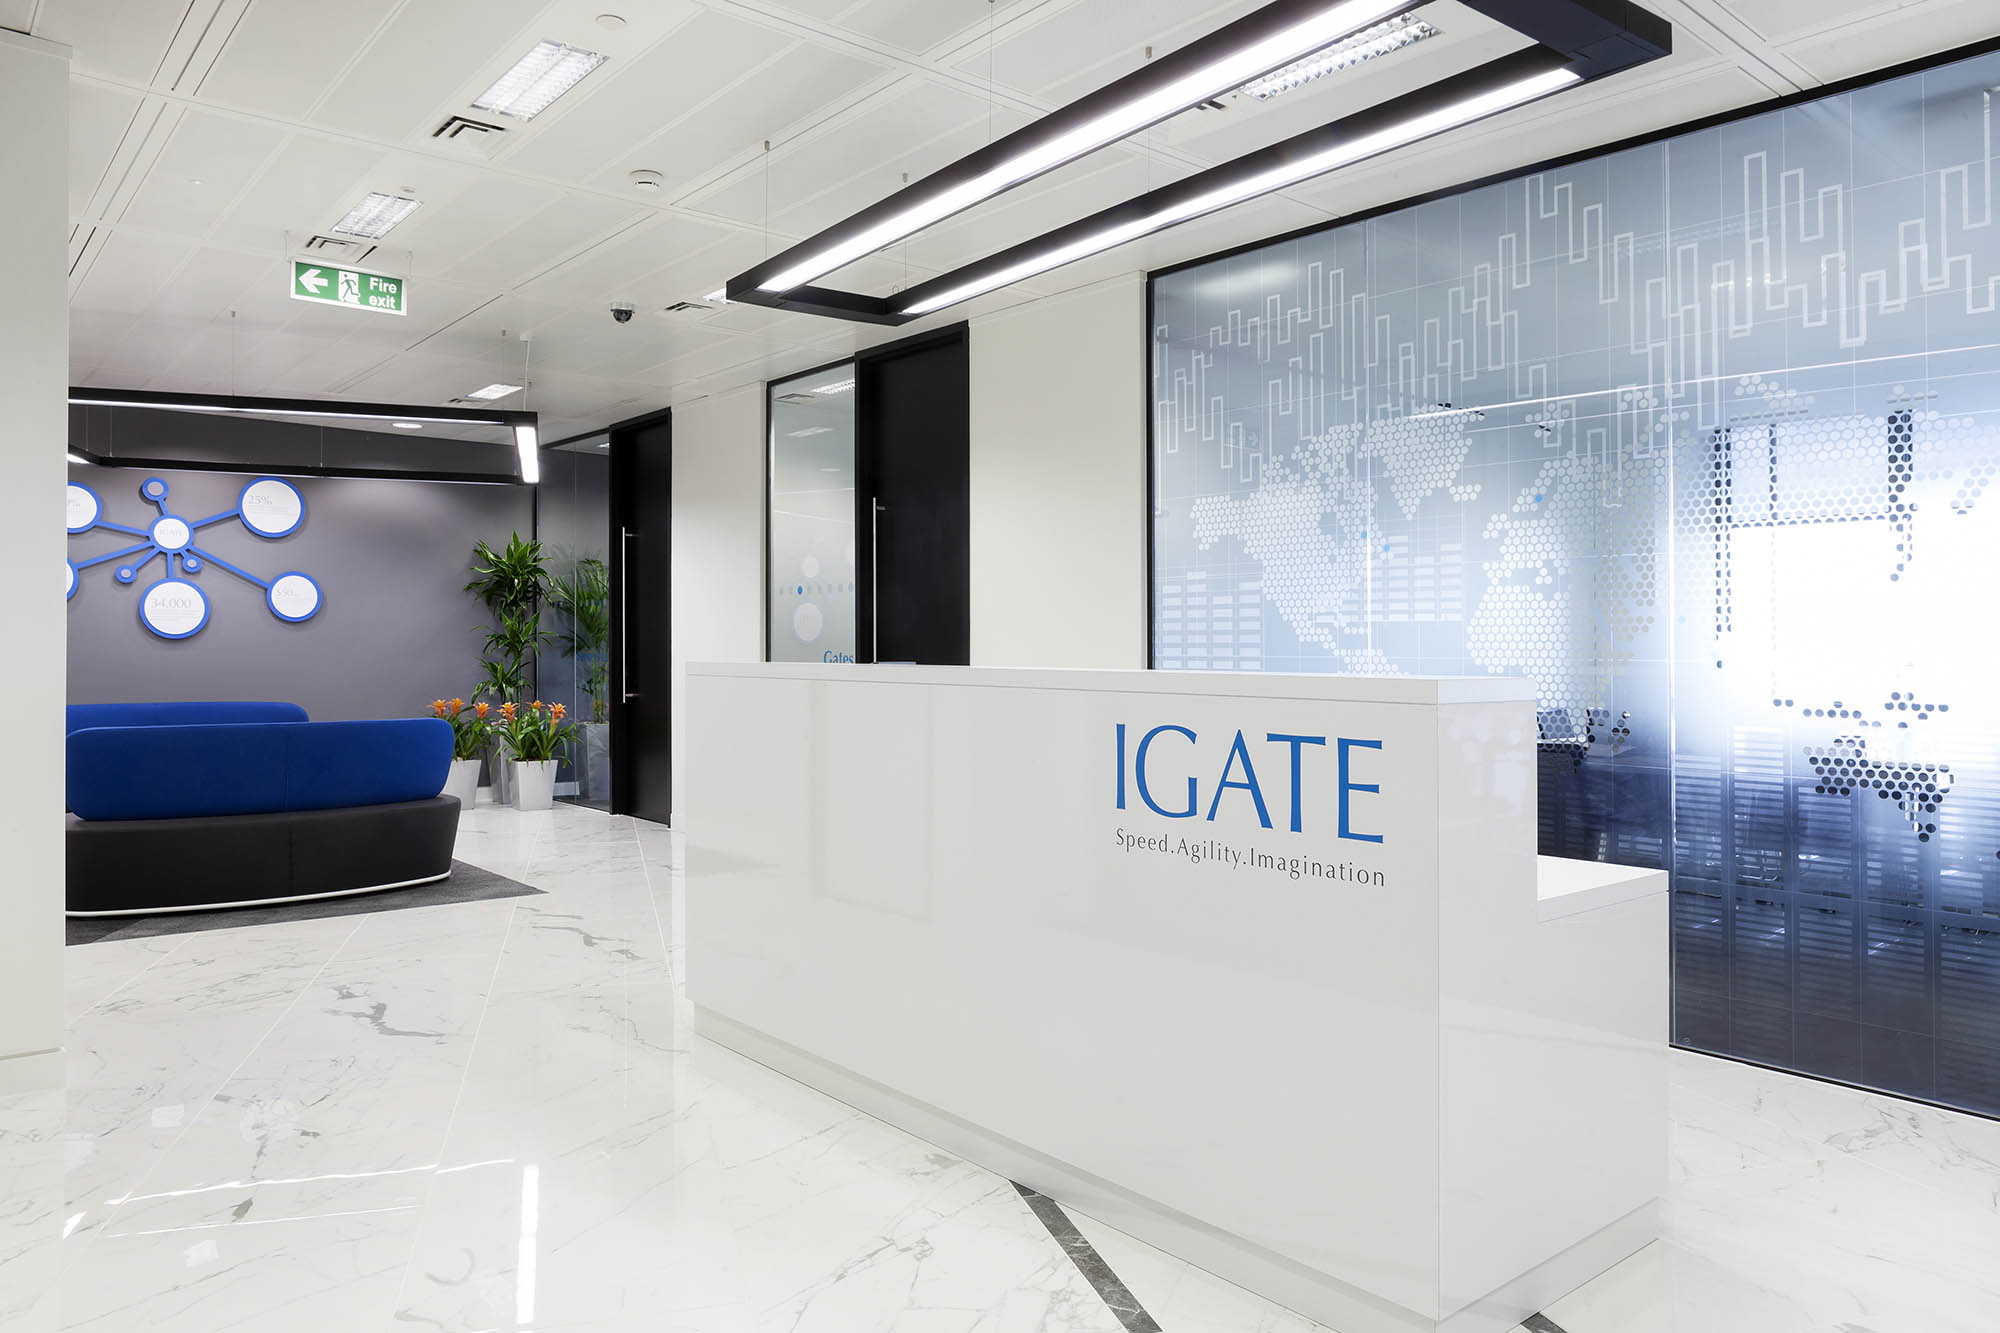 IGATE Reception